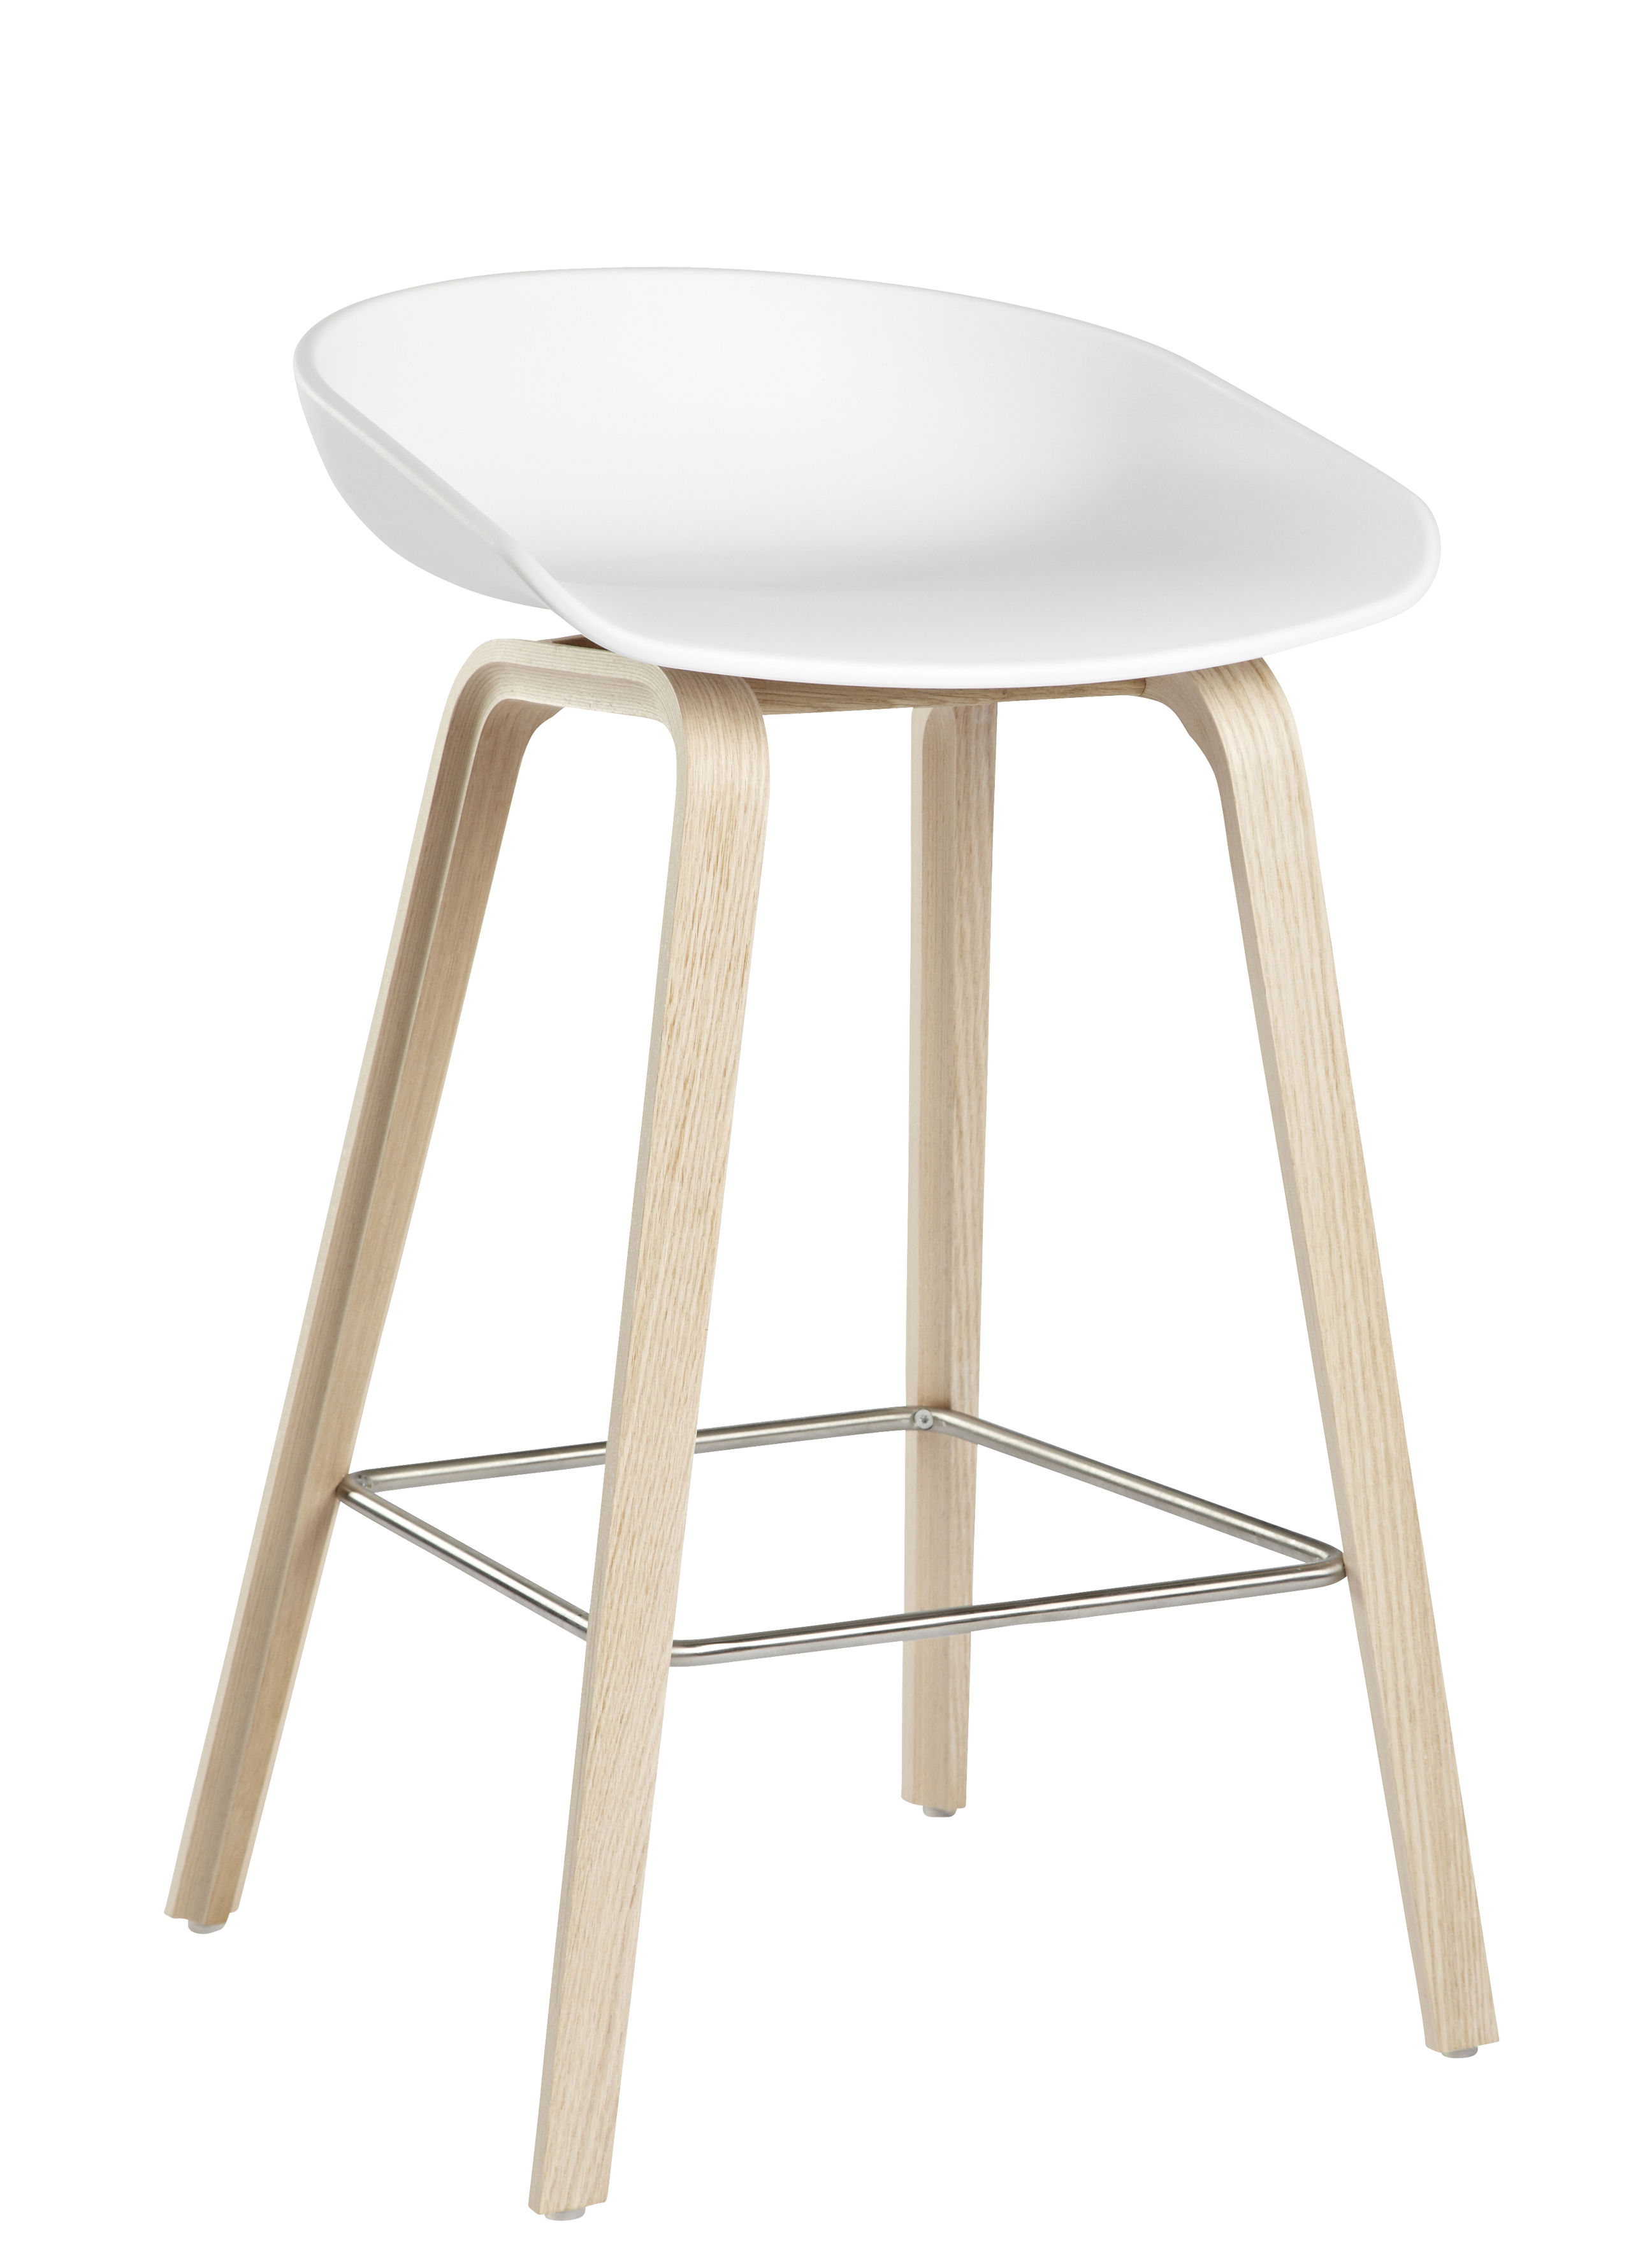 4 Tabourets De Bar Stockholm Tabouret De Bar About A Stool Aas 32 H 65 Cm Plastique